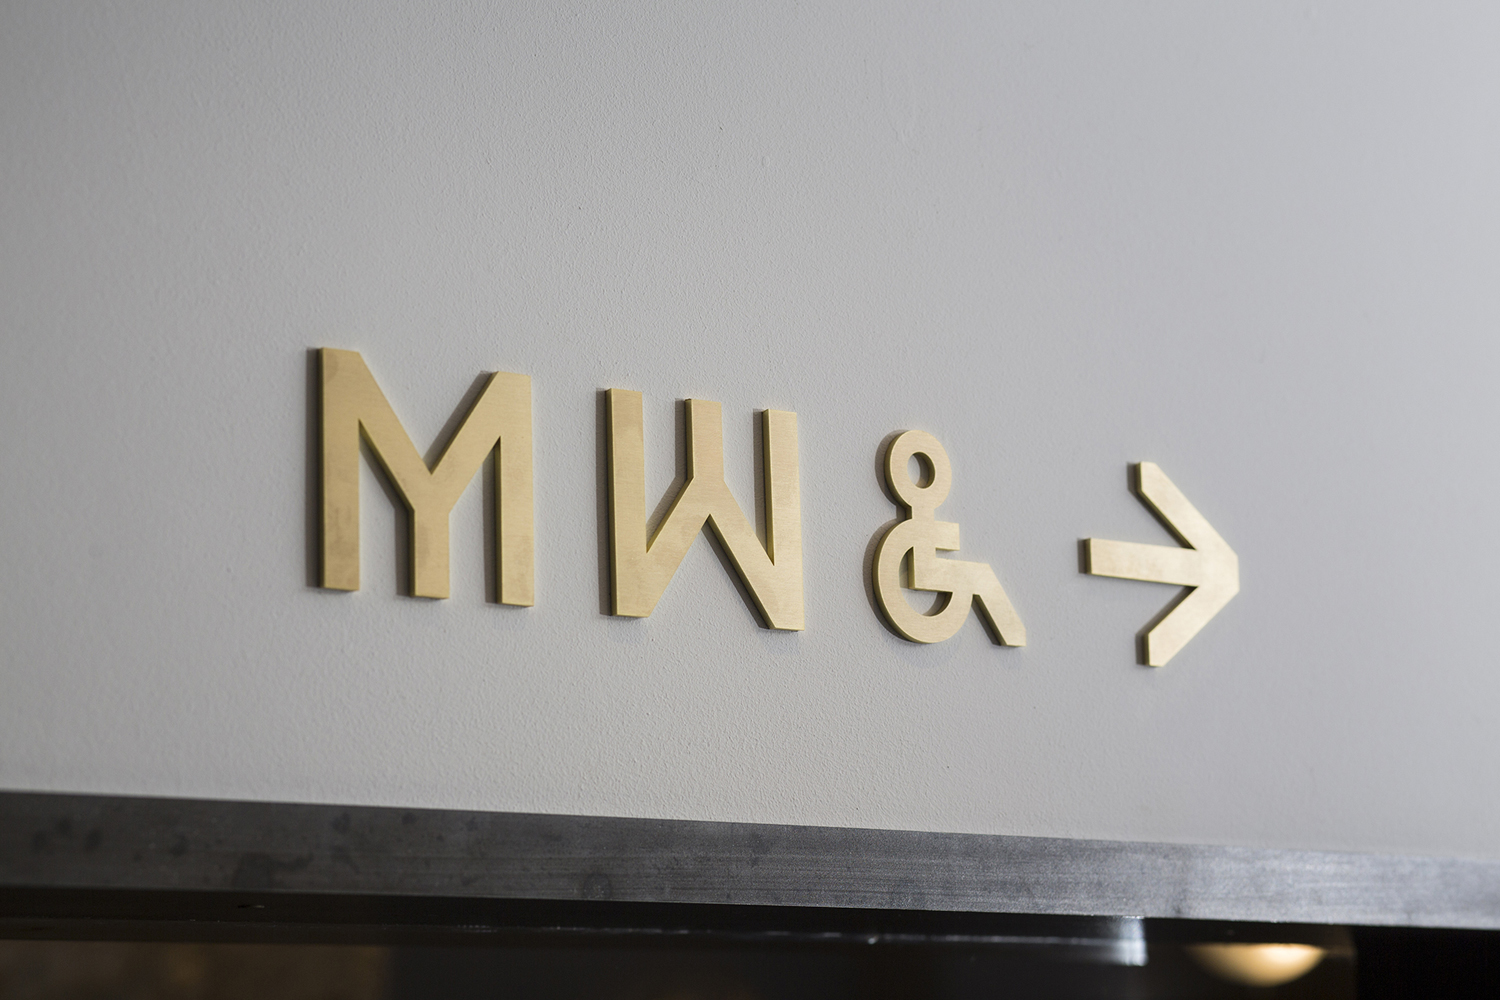 Branding and signage designed by Bibliothèque for Monica Galetti's new London restaurant Mere